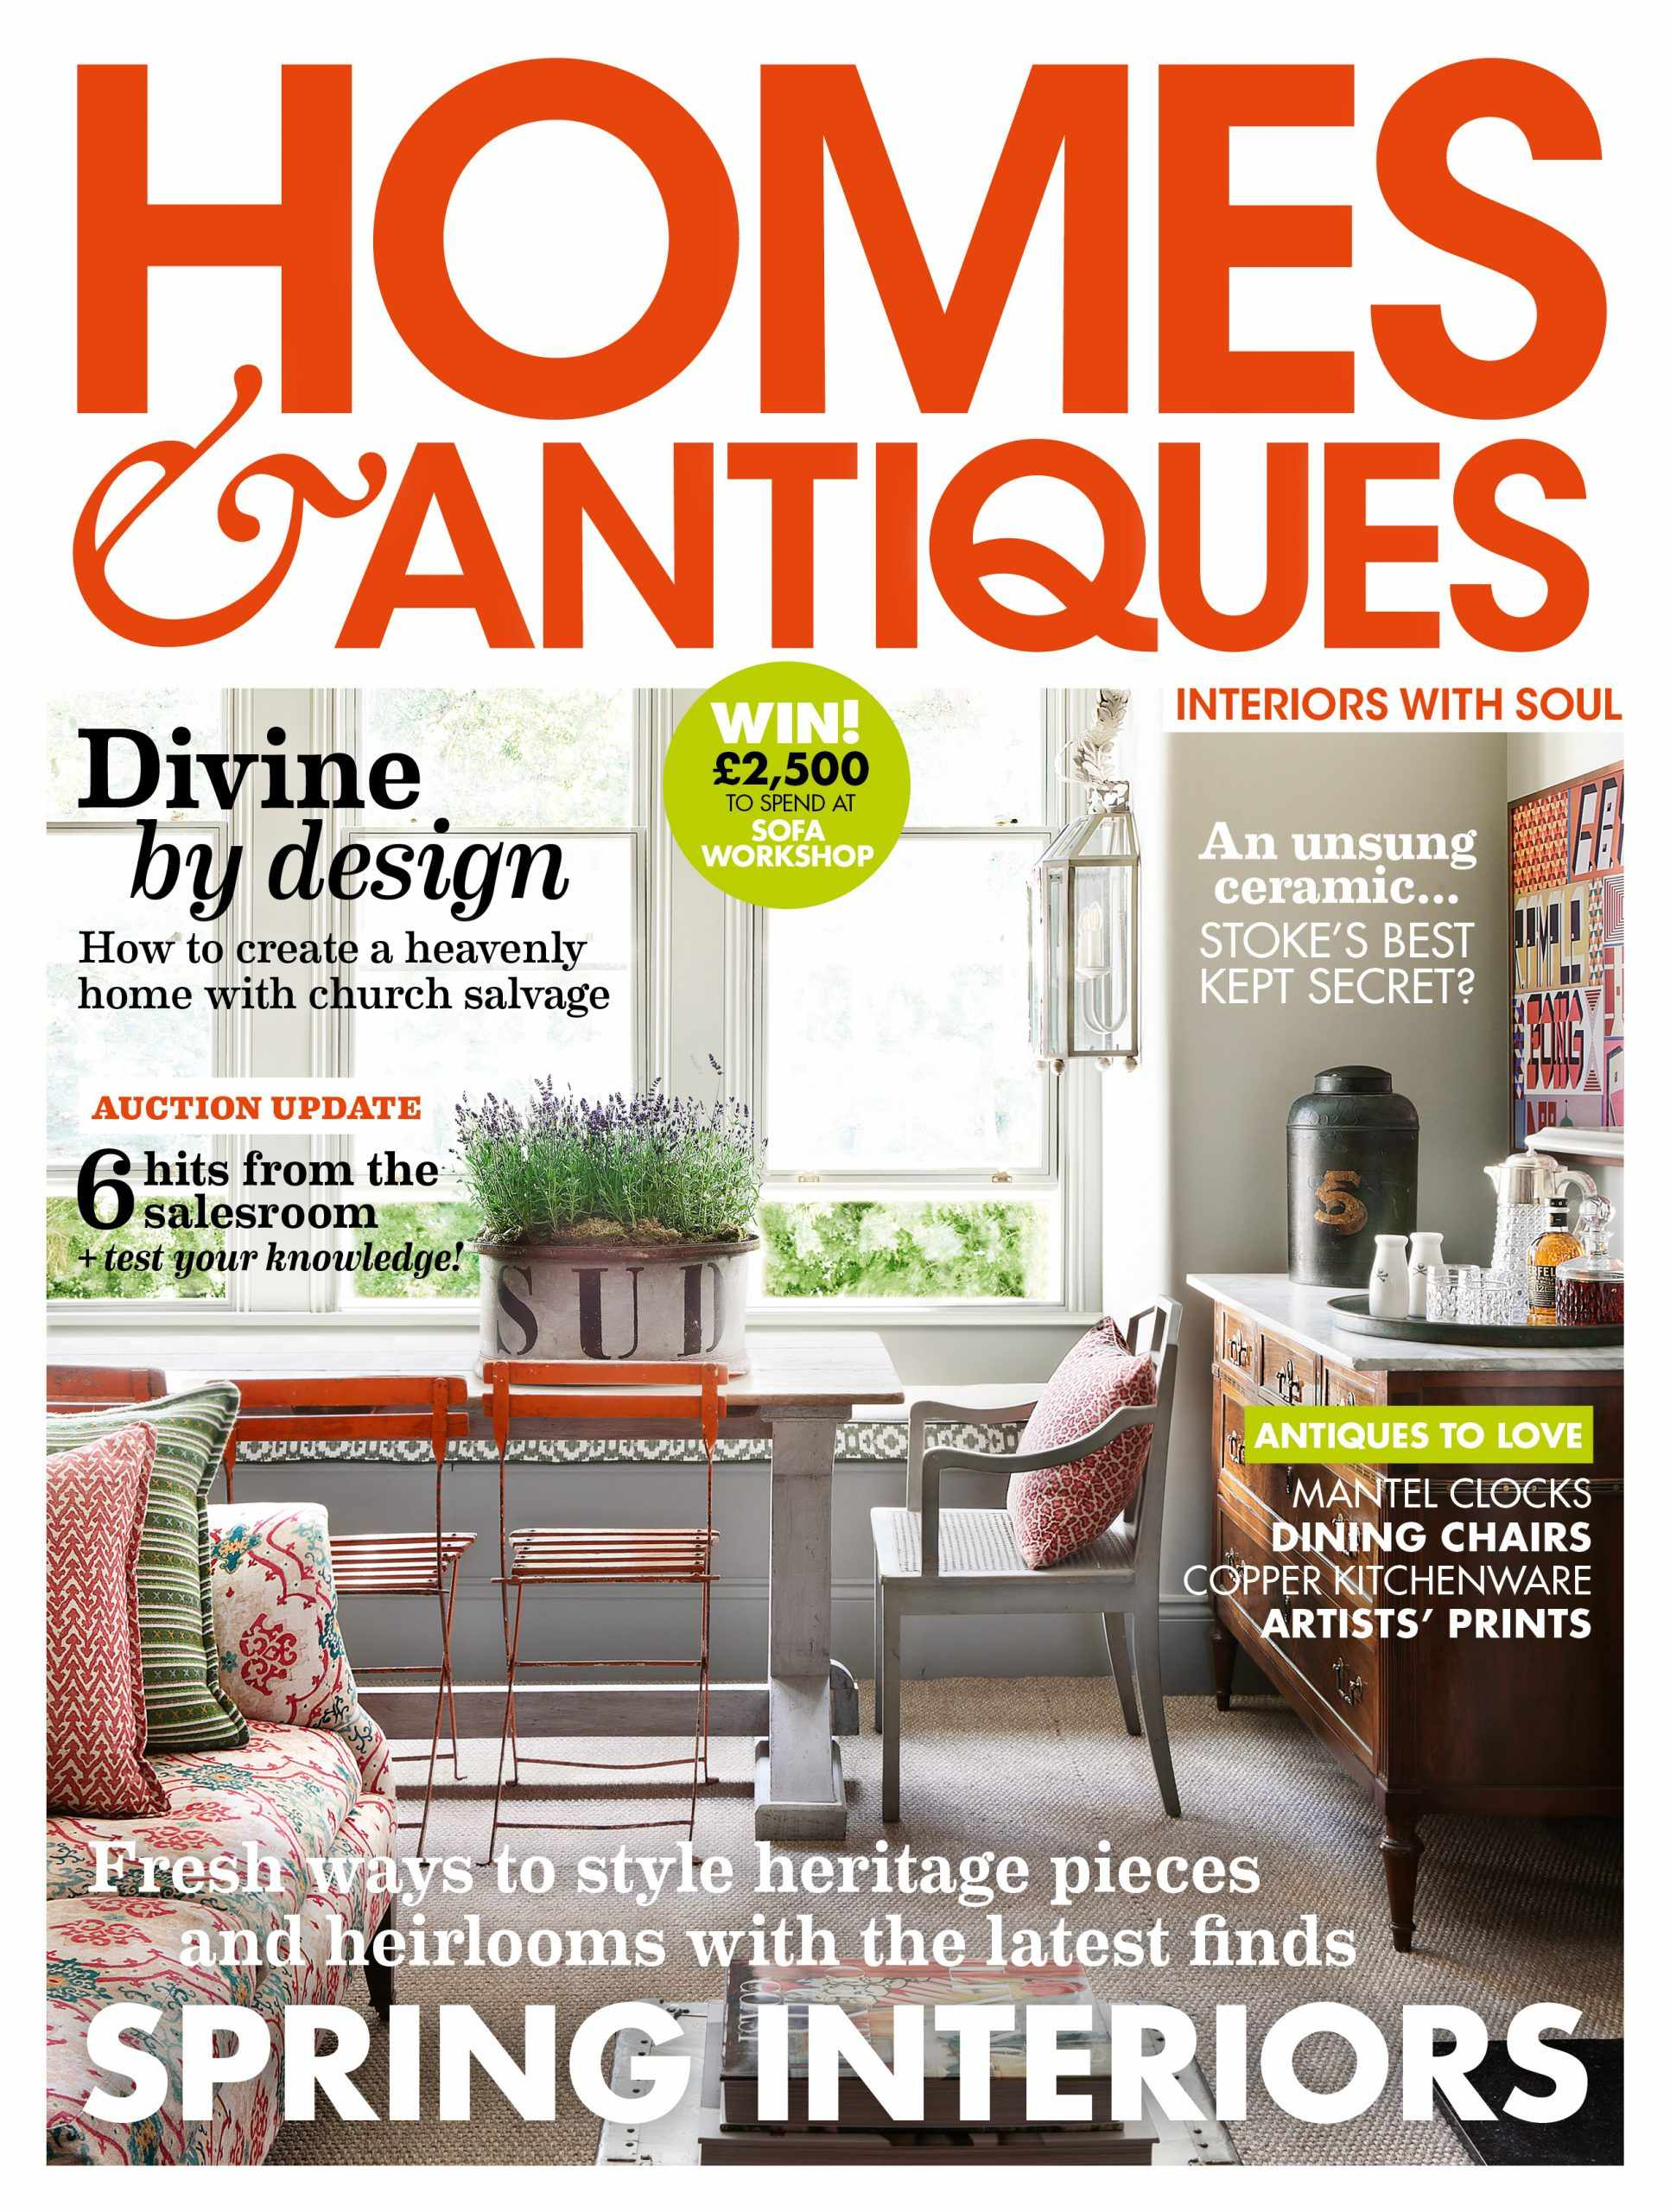 Homes & Antiques March 2020 cover